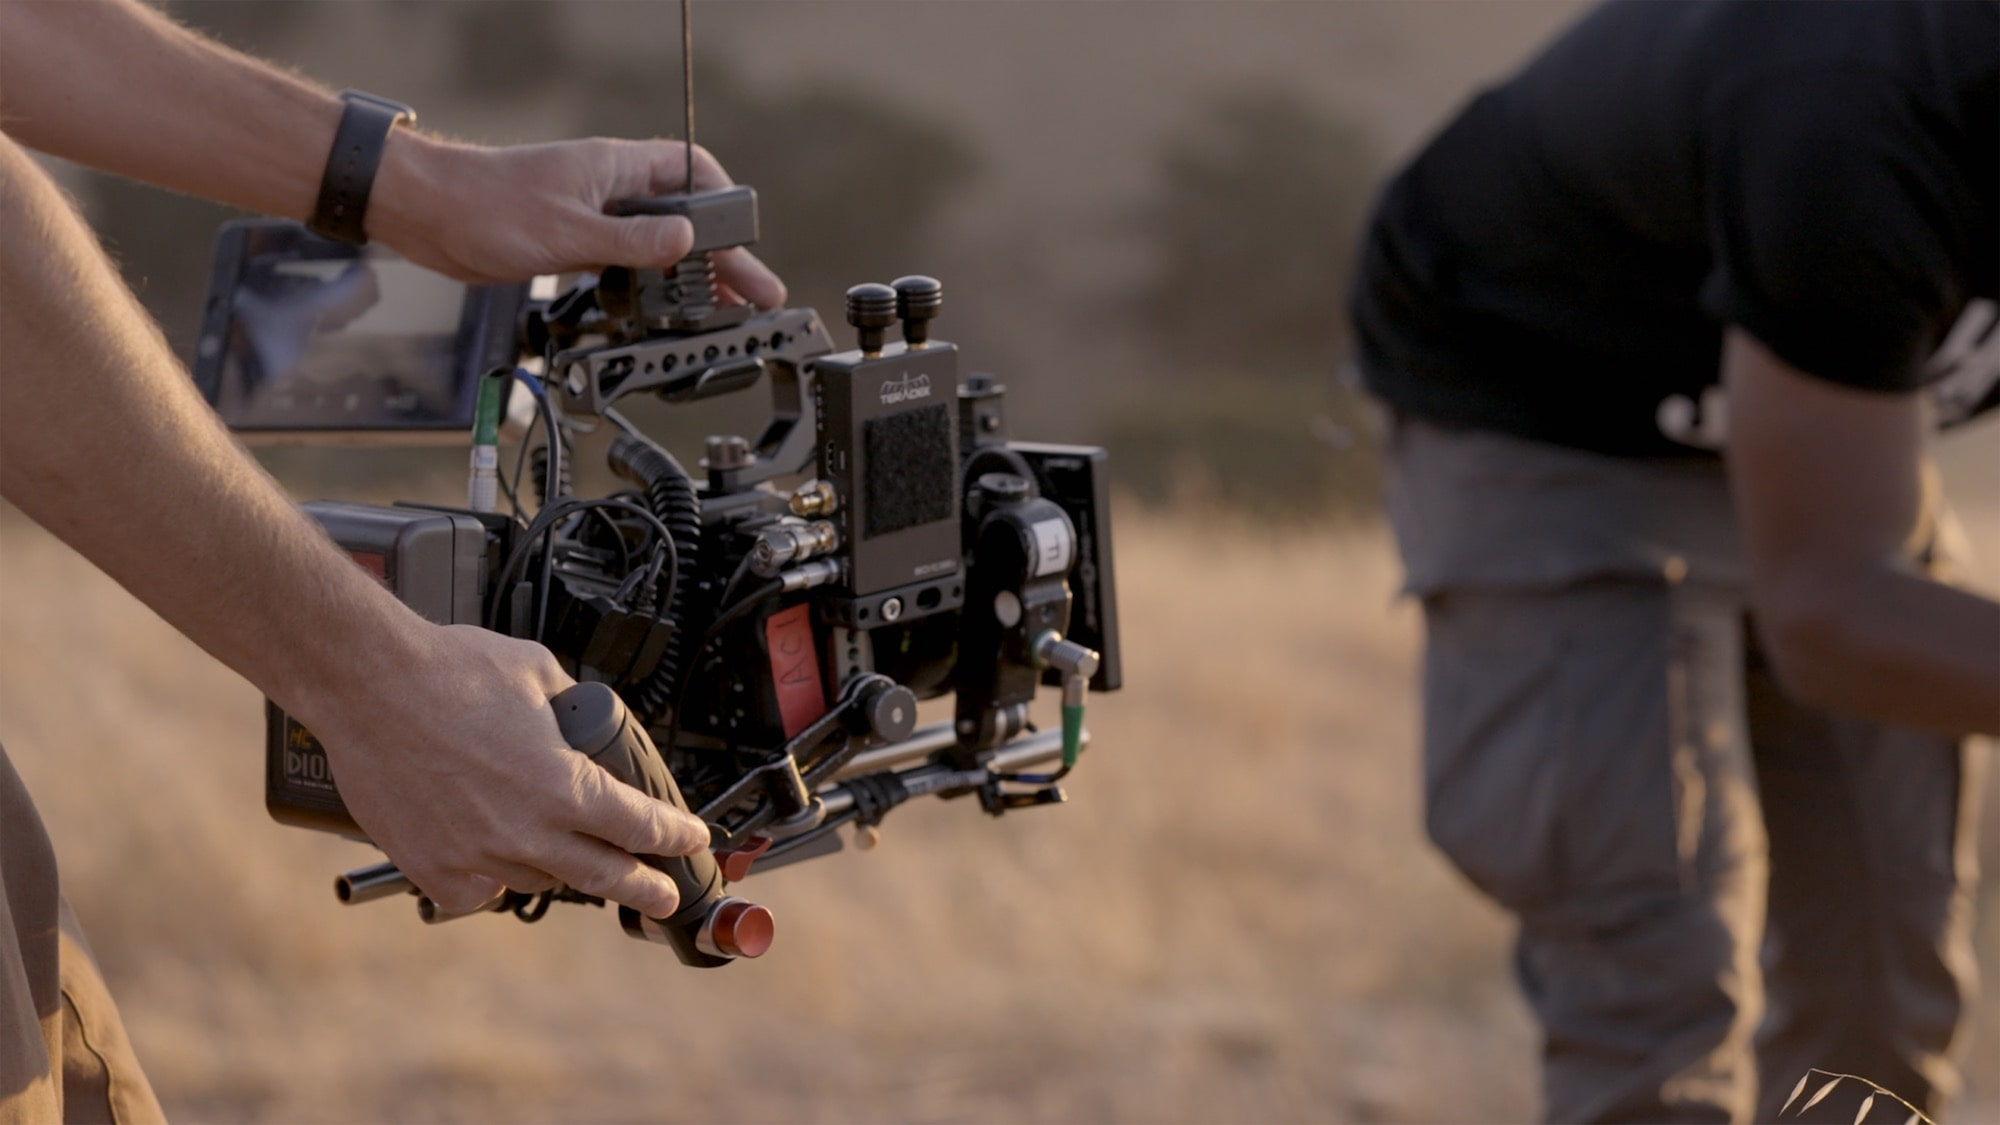 How Director Curt Morgan Is Pushing Creativity Forward With The New α7S III